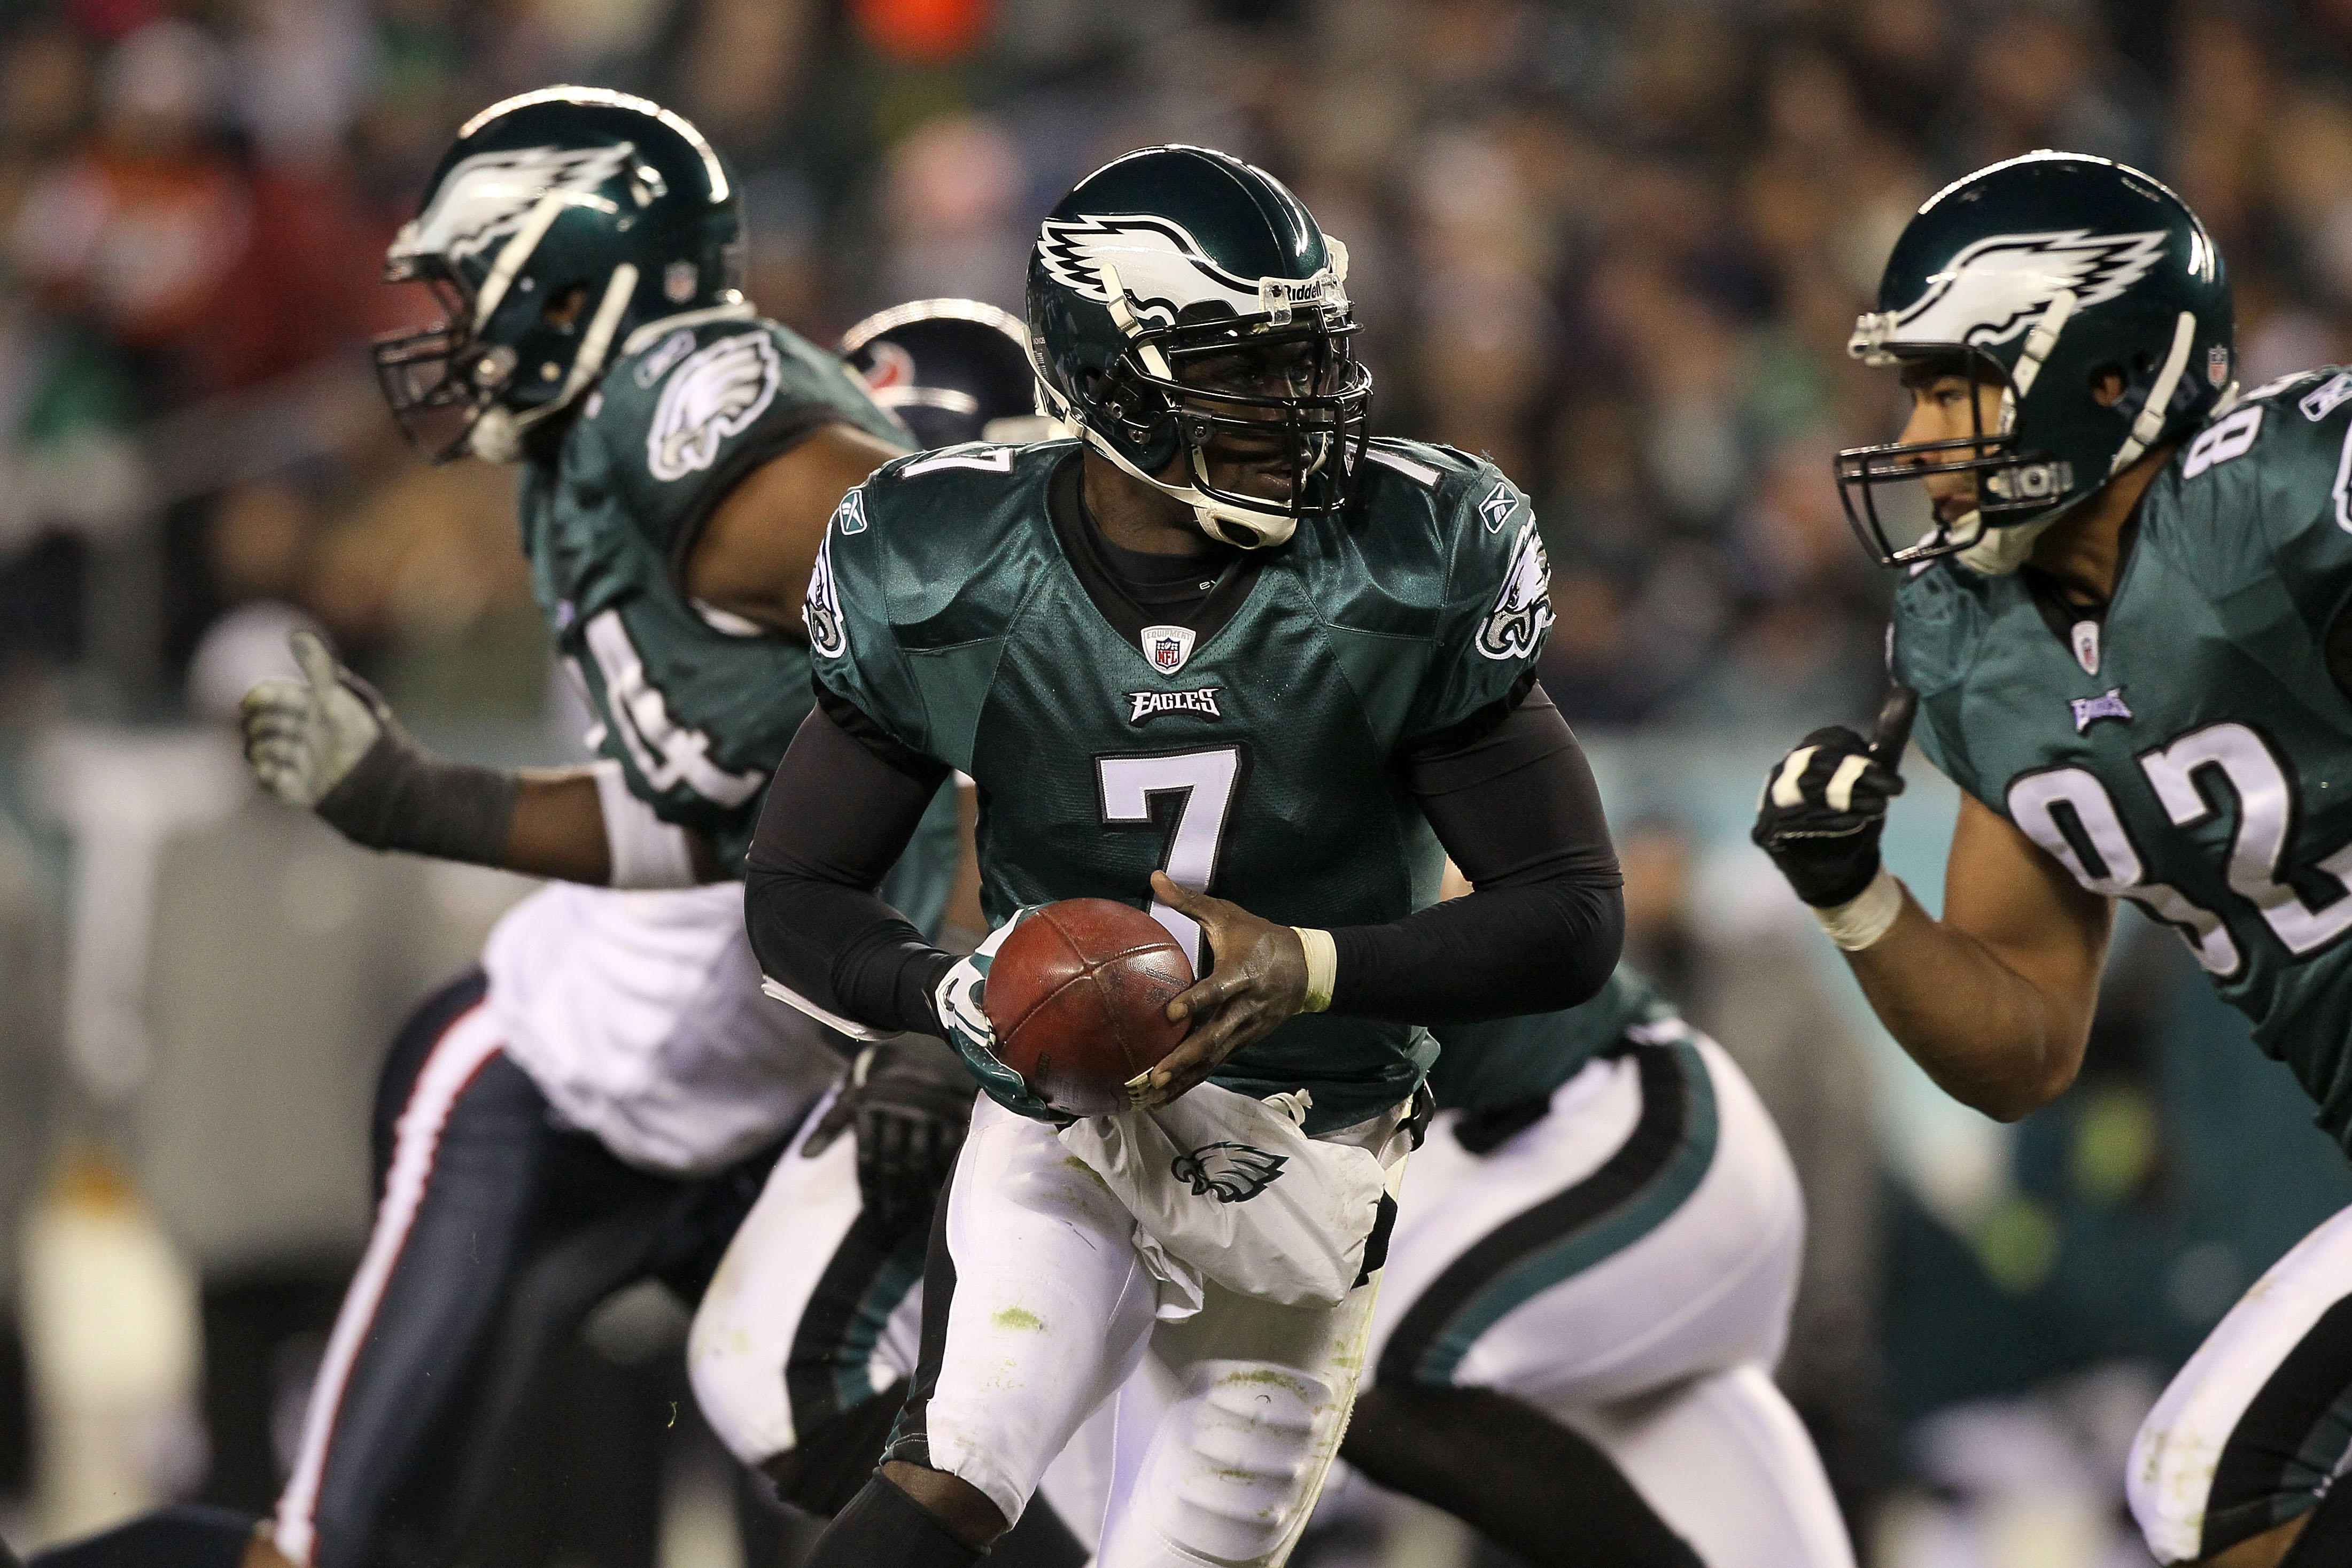 PHILADELPHIA, PA - DECEMBER 02:  Michael Vick #7 of the Philadelphia Eagles turns to hand the ball off against the Houston Texans at Lincoln Financial Field on December 2, 2010 in Philadelphia, Pennsylvania.  (Photo by Jim McIsaac/Getty Images)